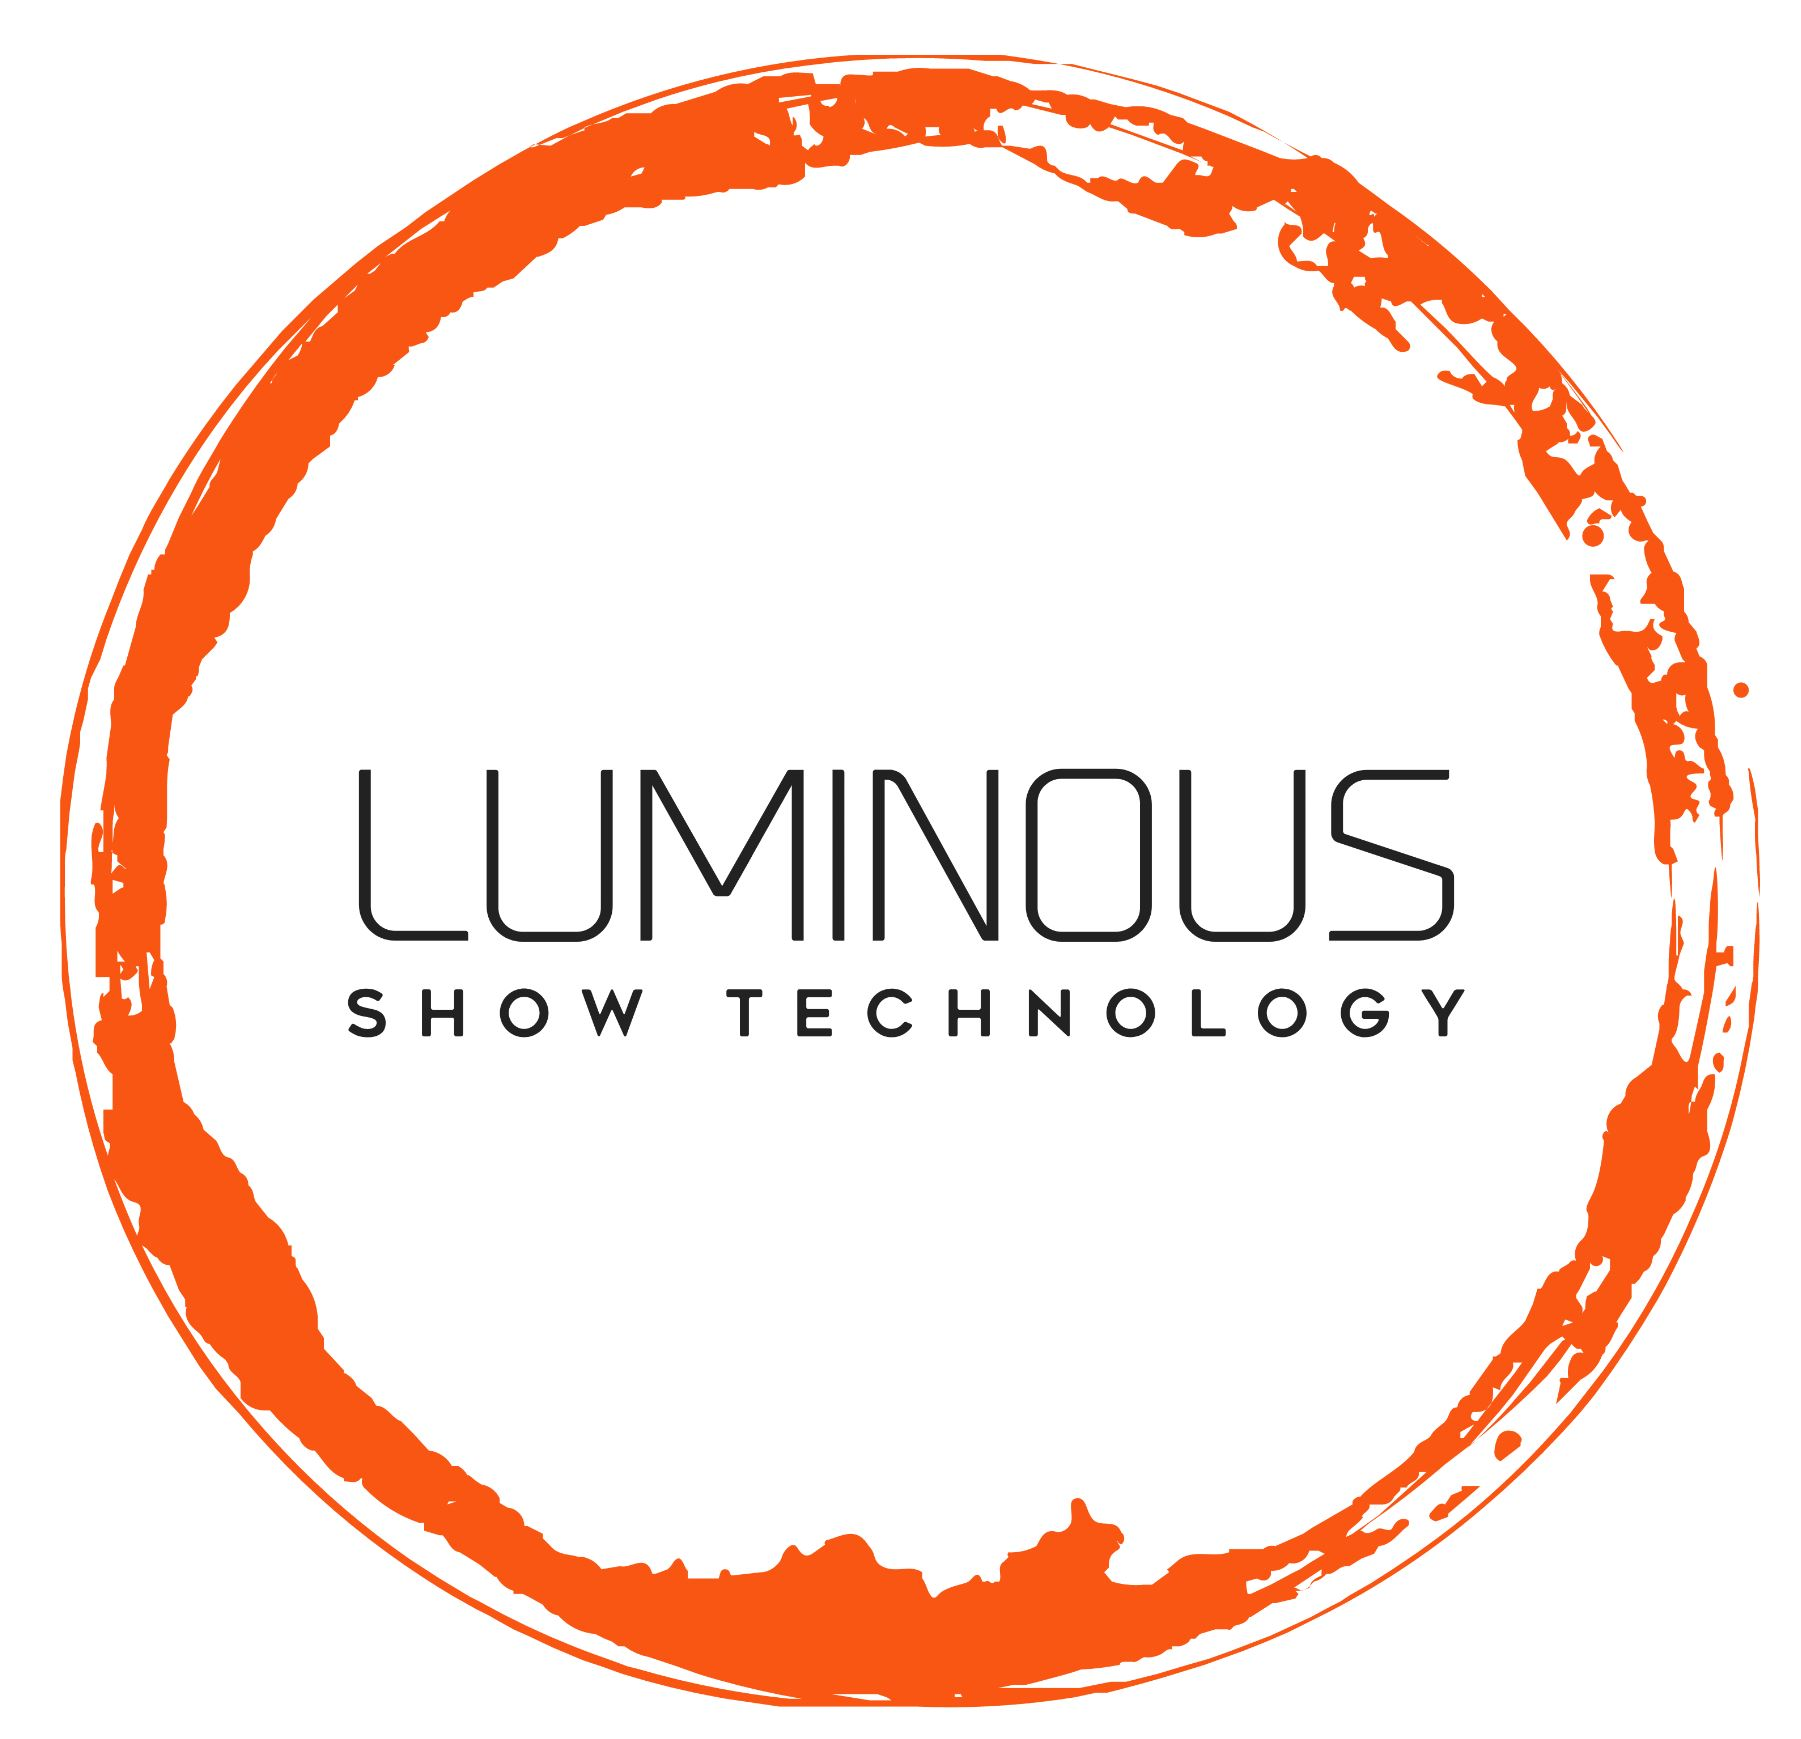 Luminous Show Technology